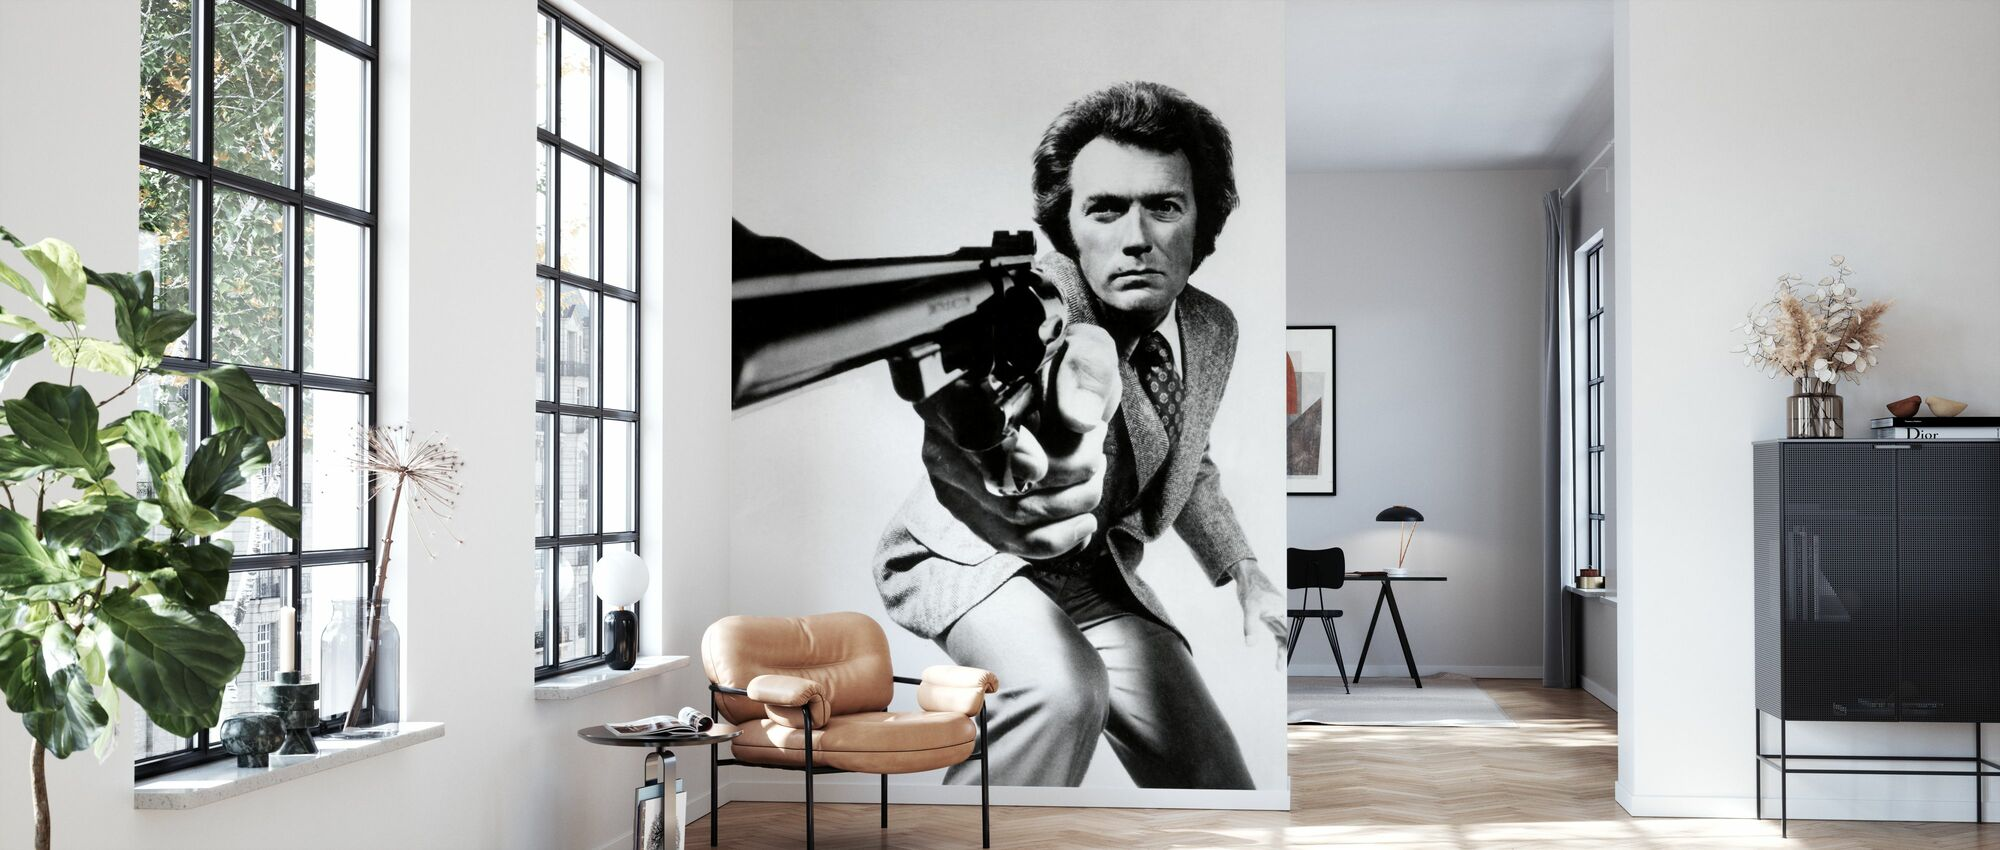 Clint Eastwood in Magnum Force - Wallpaper - Living Room